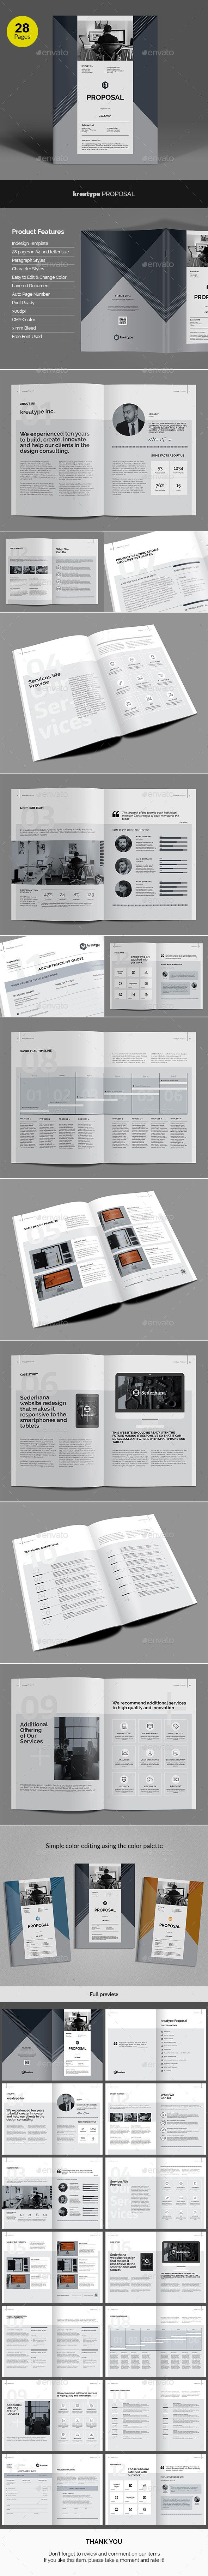 Kreatype Business Proposal Template InDesign INDD. Download here: http://graphicriver.net/item/kreatype-business-proposal-v02/16746296?ref=ksioks